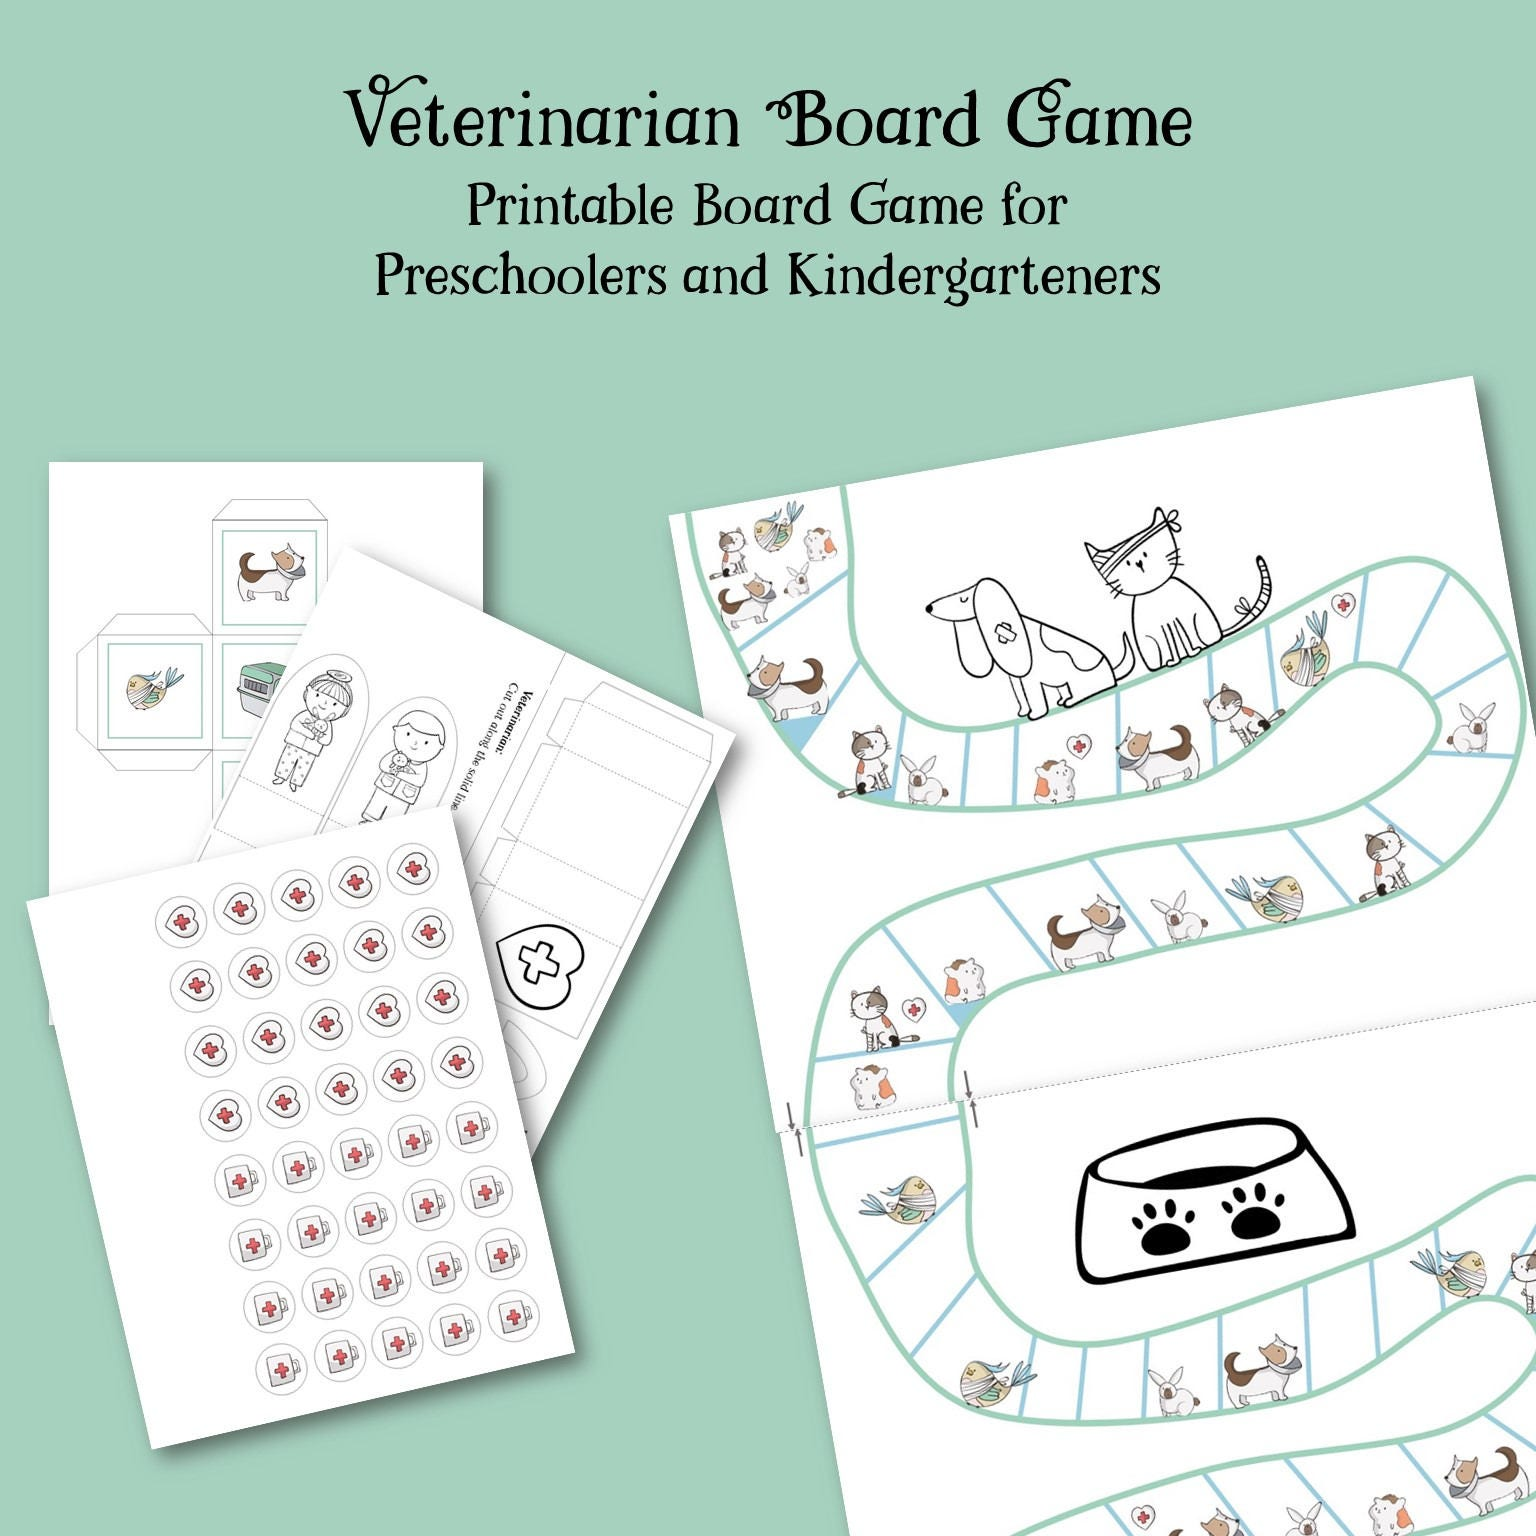 Printable Board Game for 5 year olds Kindergarten Game